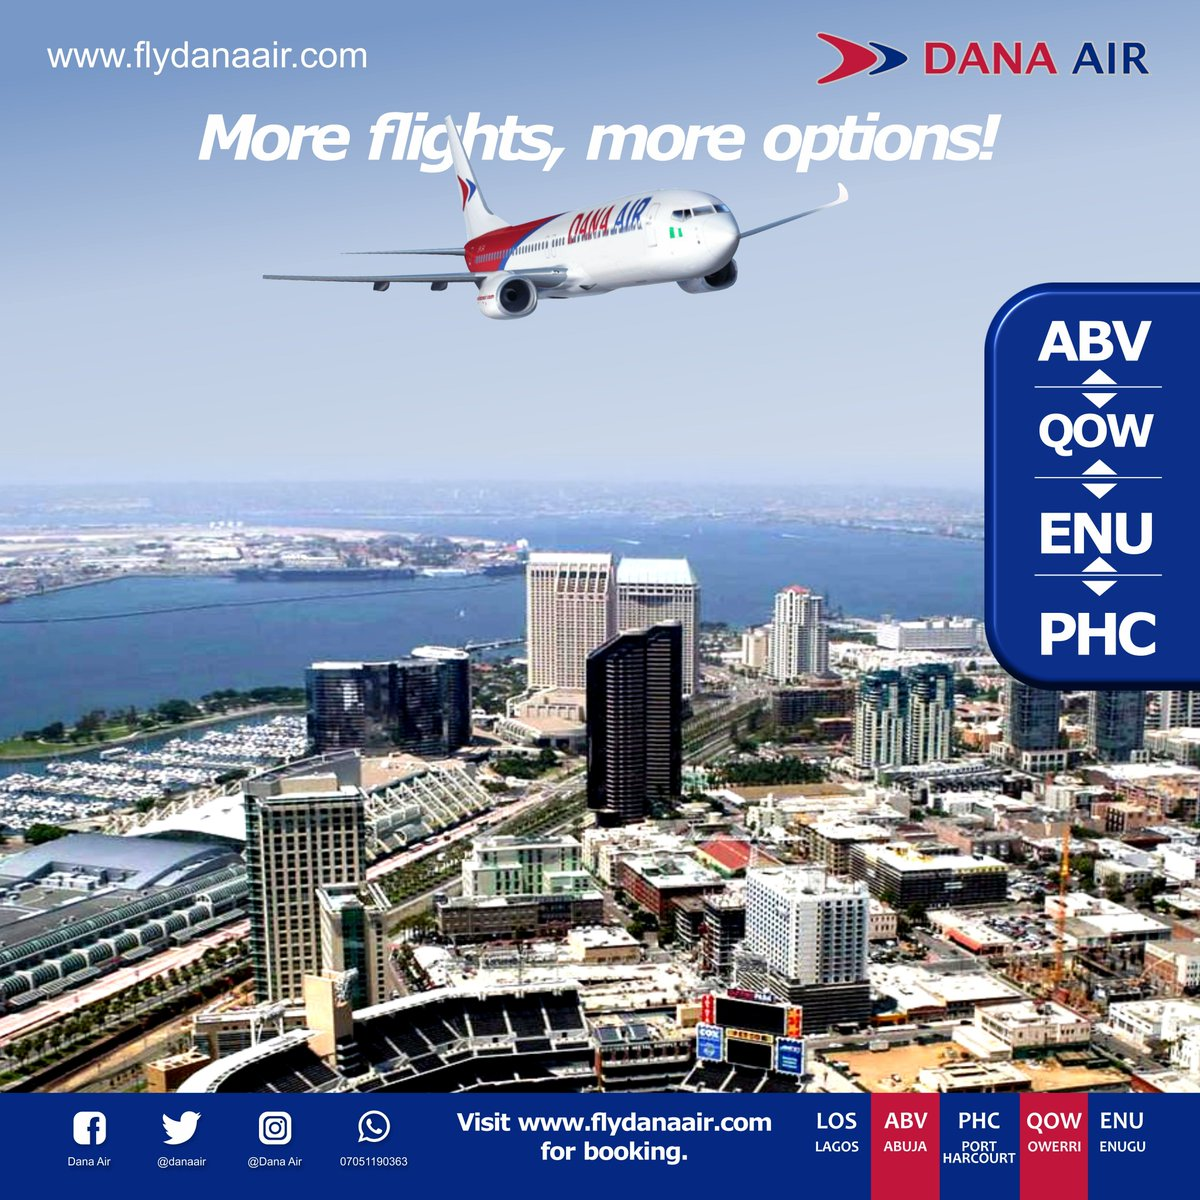 More flight options available for your convenience. Tickets are available for booking on  #thursdayvibes #thursdaymotivation #aviation #aviationlovers #travel #abuja #lagos #enugu #owerri #portharcourt